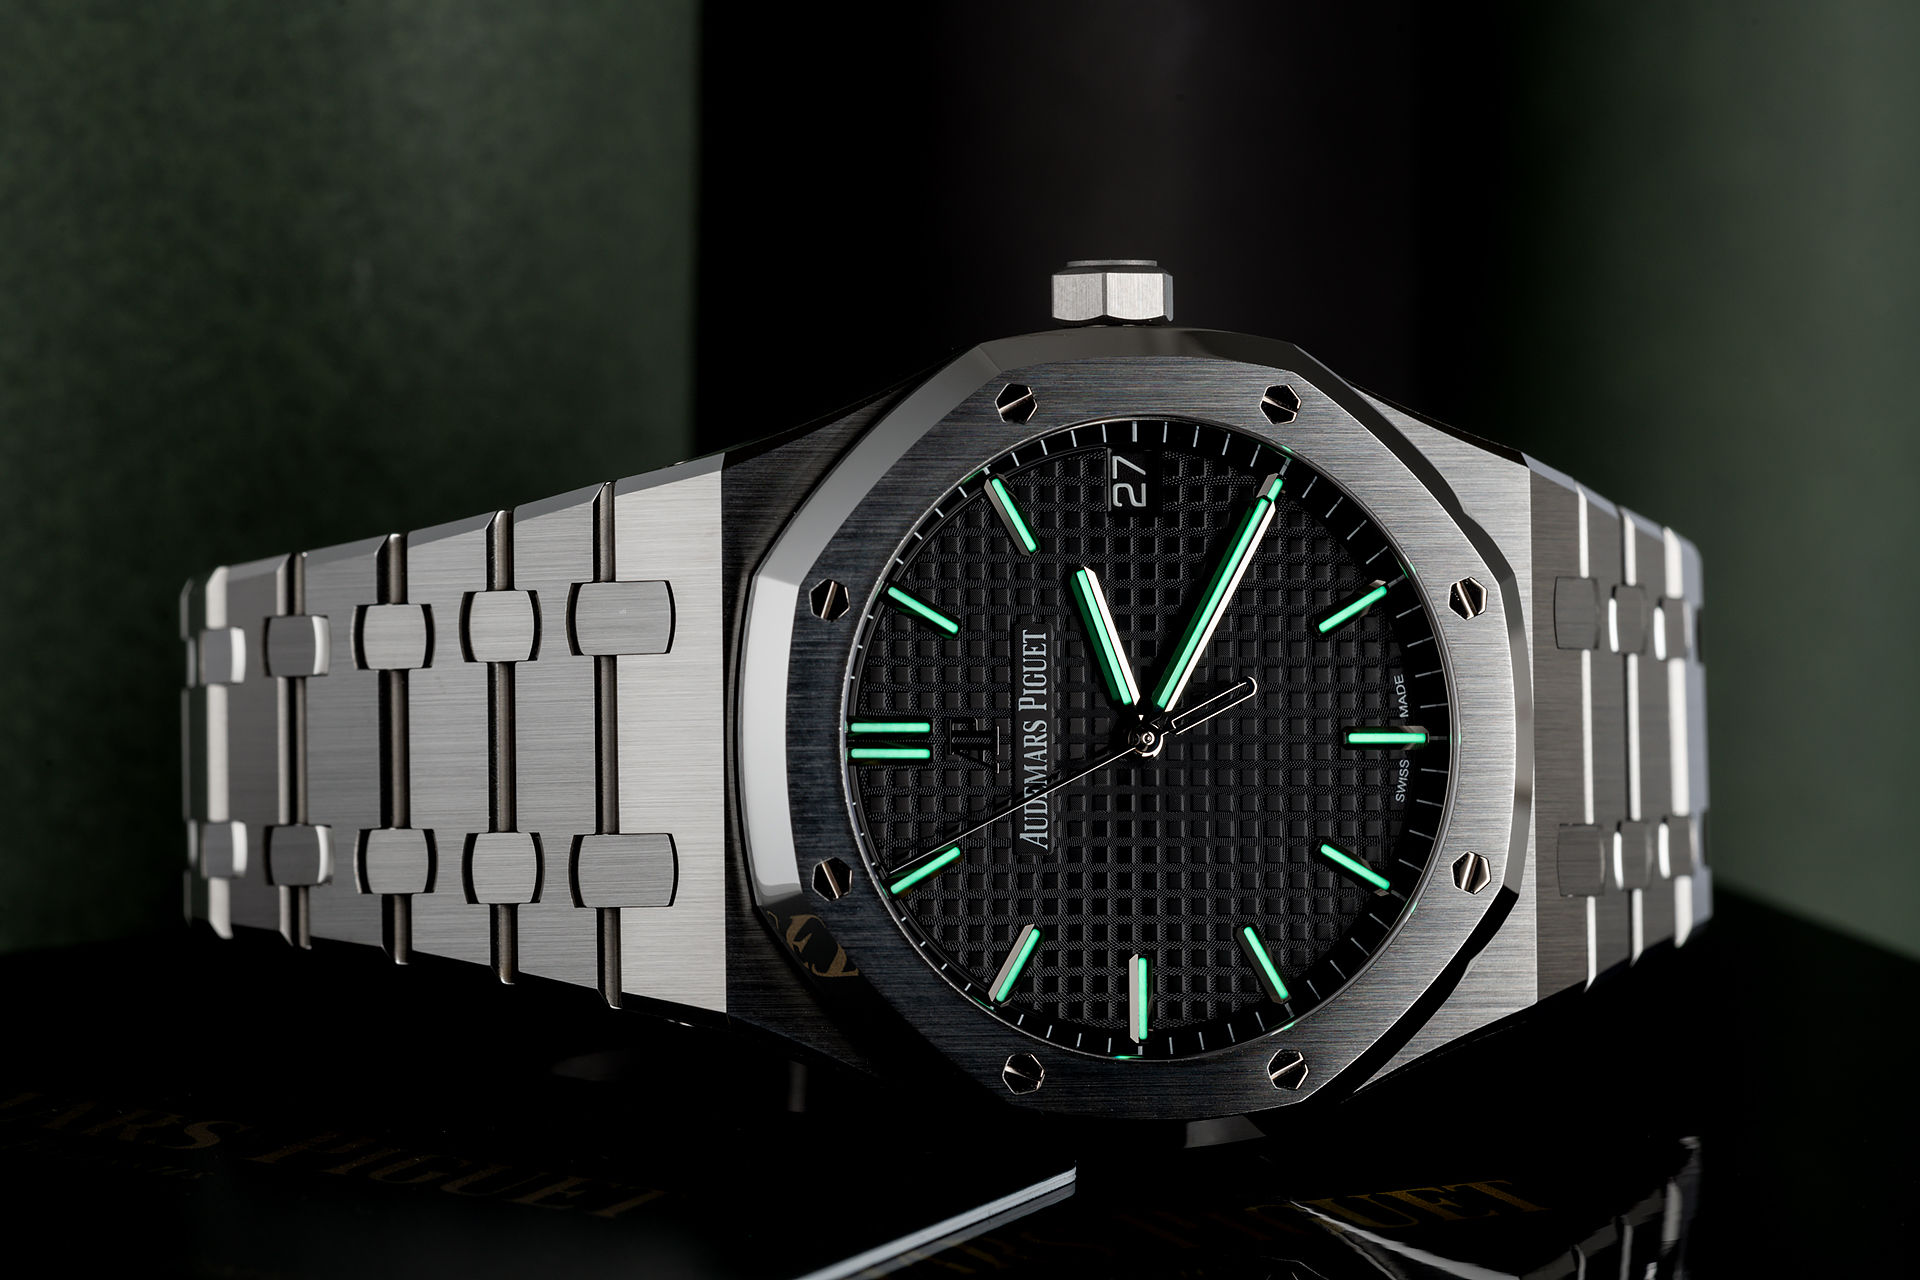 ref 15500ST.OO.1220ST.03 | 2 Year AP Warranty | Audemars Piguet Royal Oak